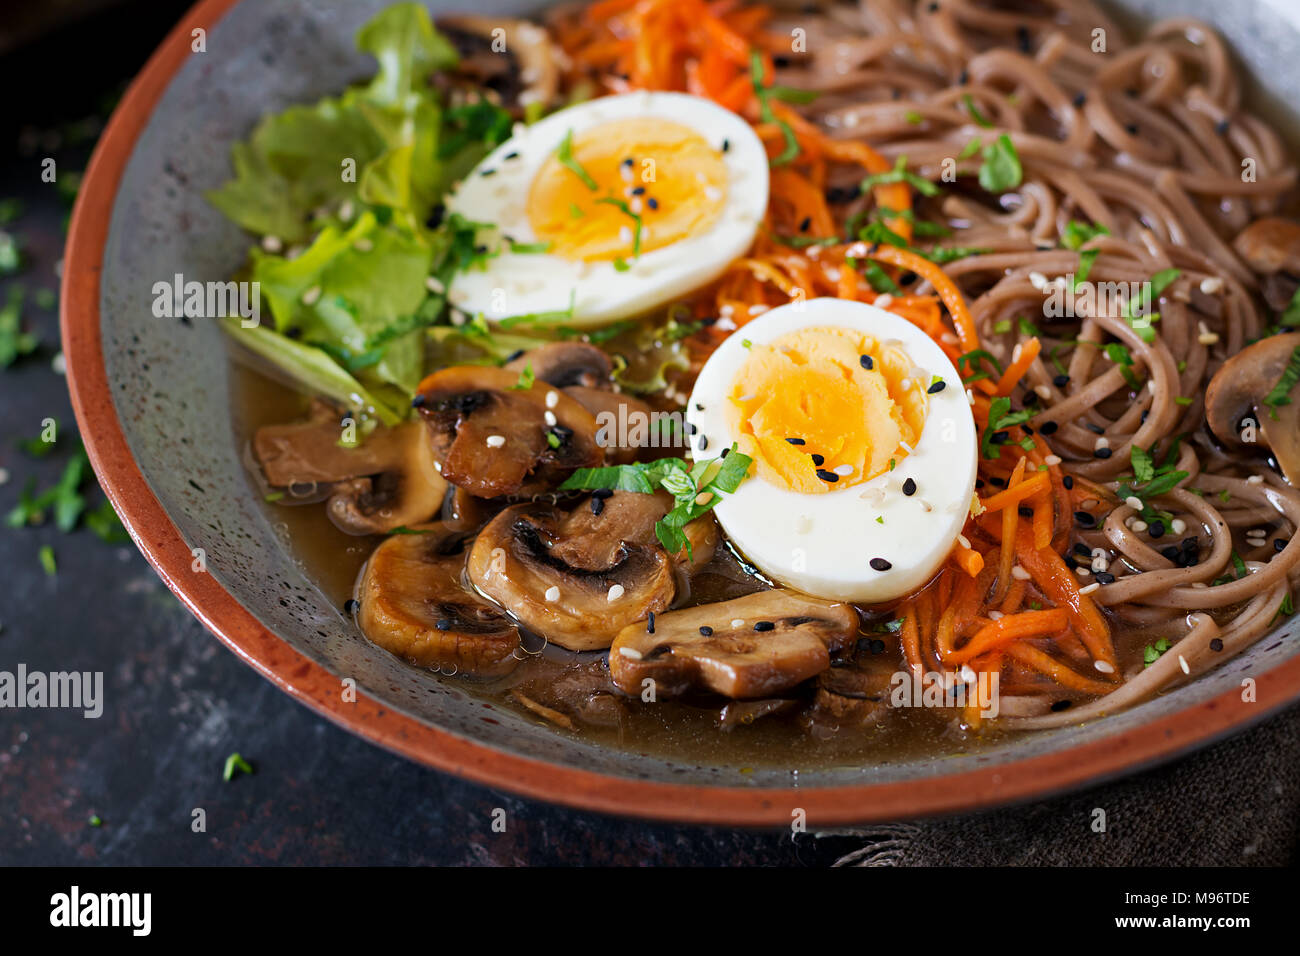 Japanese miso ramen noodles with eggs, carrot and mushrooms. Soup delicious food. - Stock Image